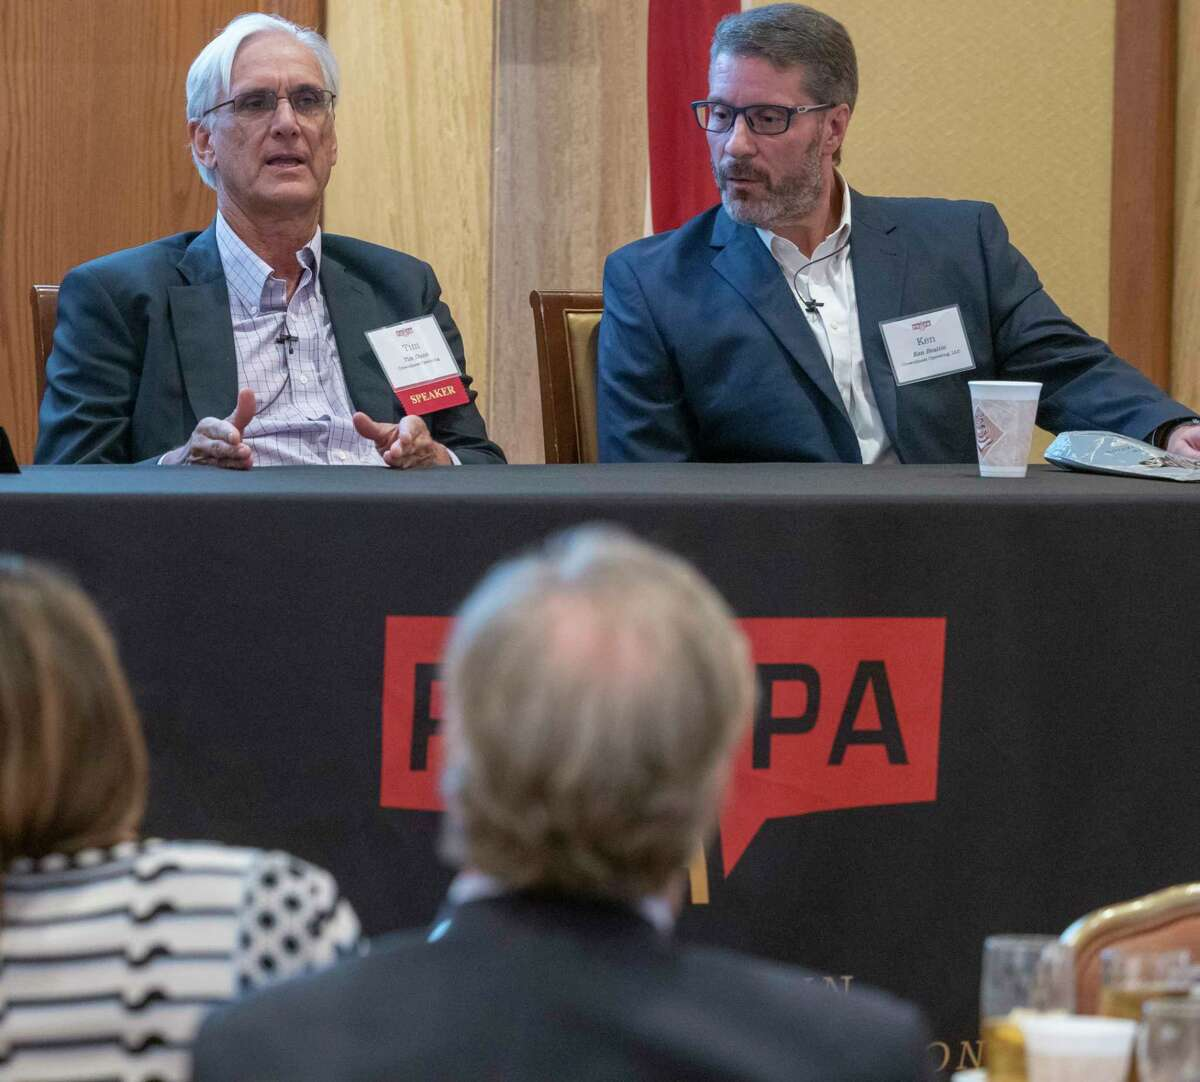 Panel discussion with CrownQuest Operating executives, Tim Dunn, CEO and Ken Beattie at the 59th Annual Meeting of the Permian Basin Petroleum Association 09/30/2021 at the Petroleum Club. Tim Fischer/Reporter-Telegram